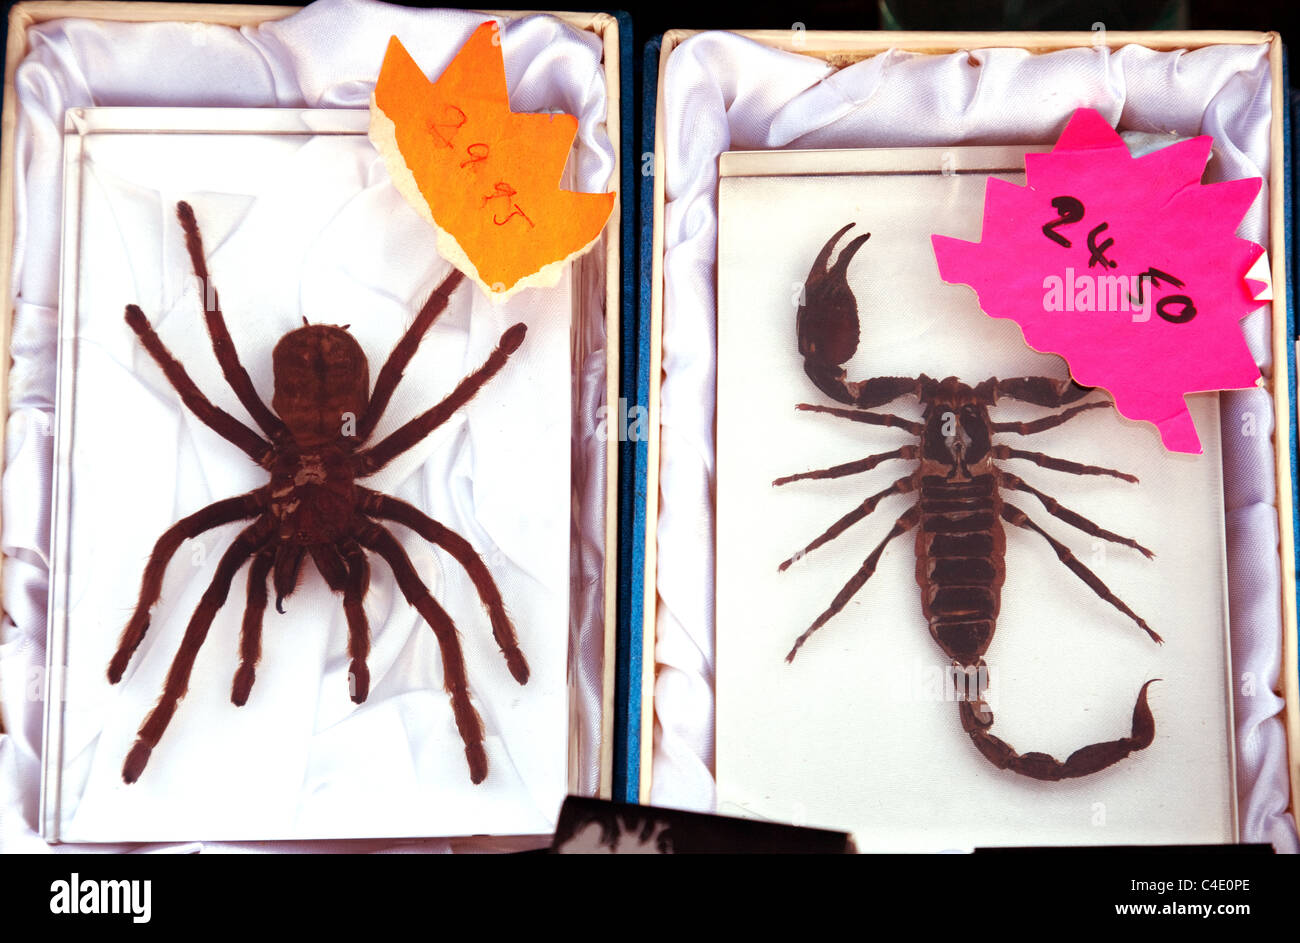 Dead tarantula and scorpion for sale, Newmarket town carnival Suffolk UK - Stock Image